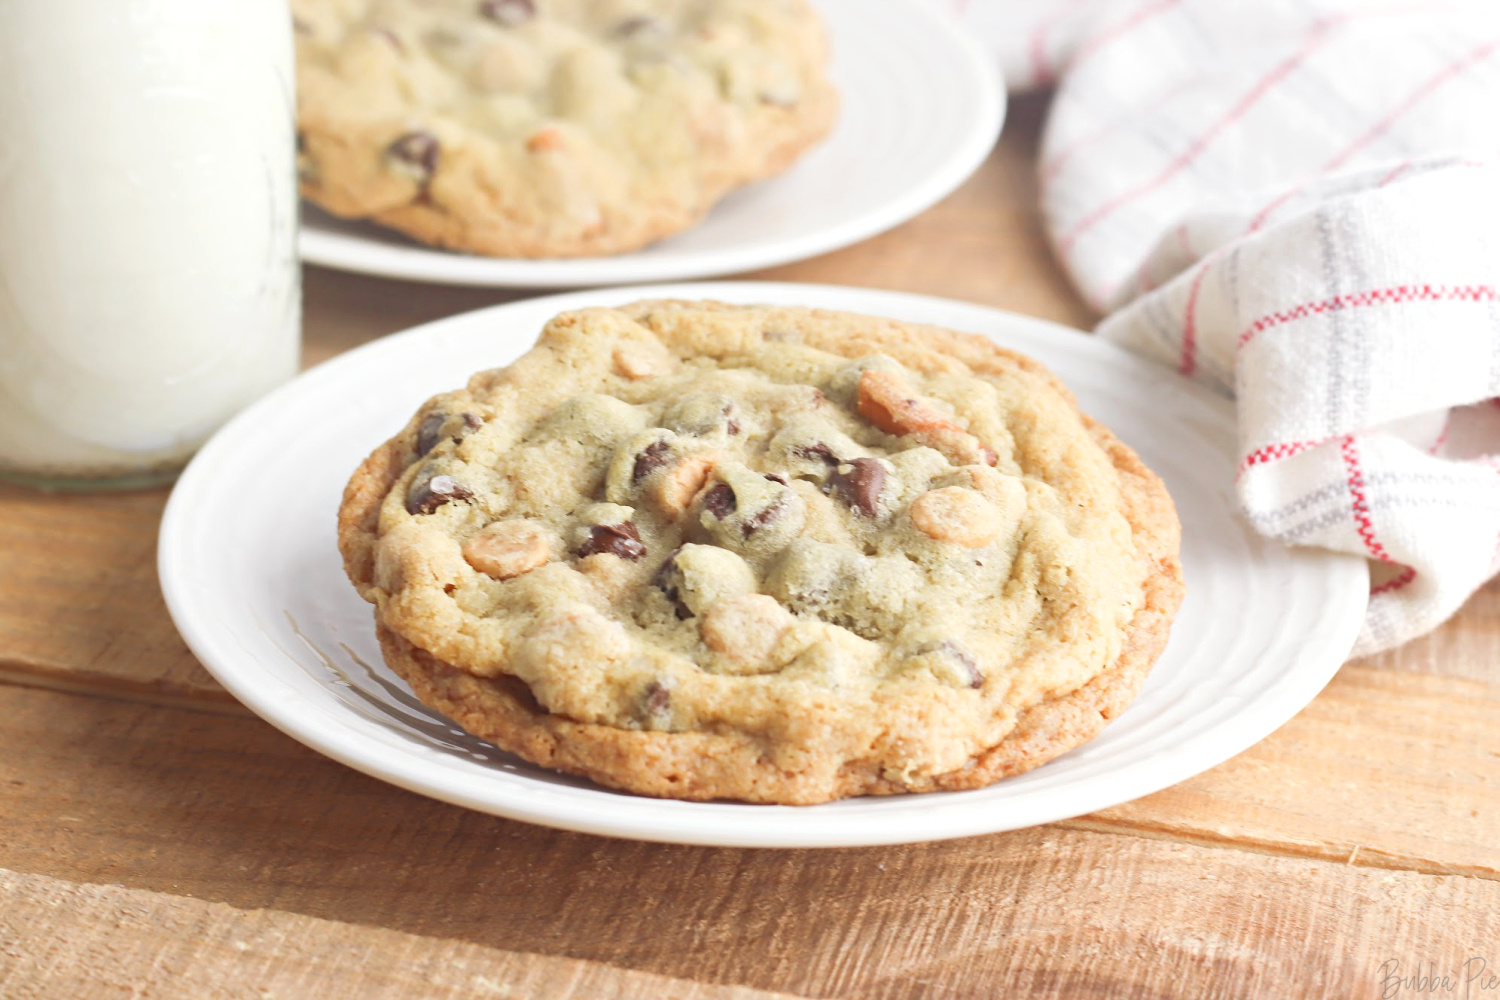 Gluten Free Kitchen Sink Cookies make a great dessert recipe for any diet.